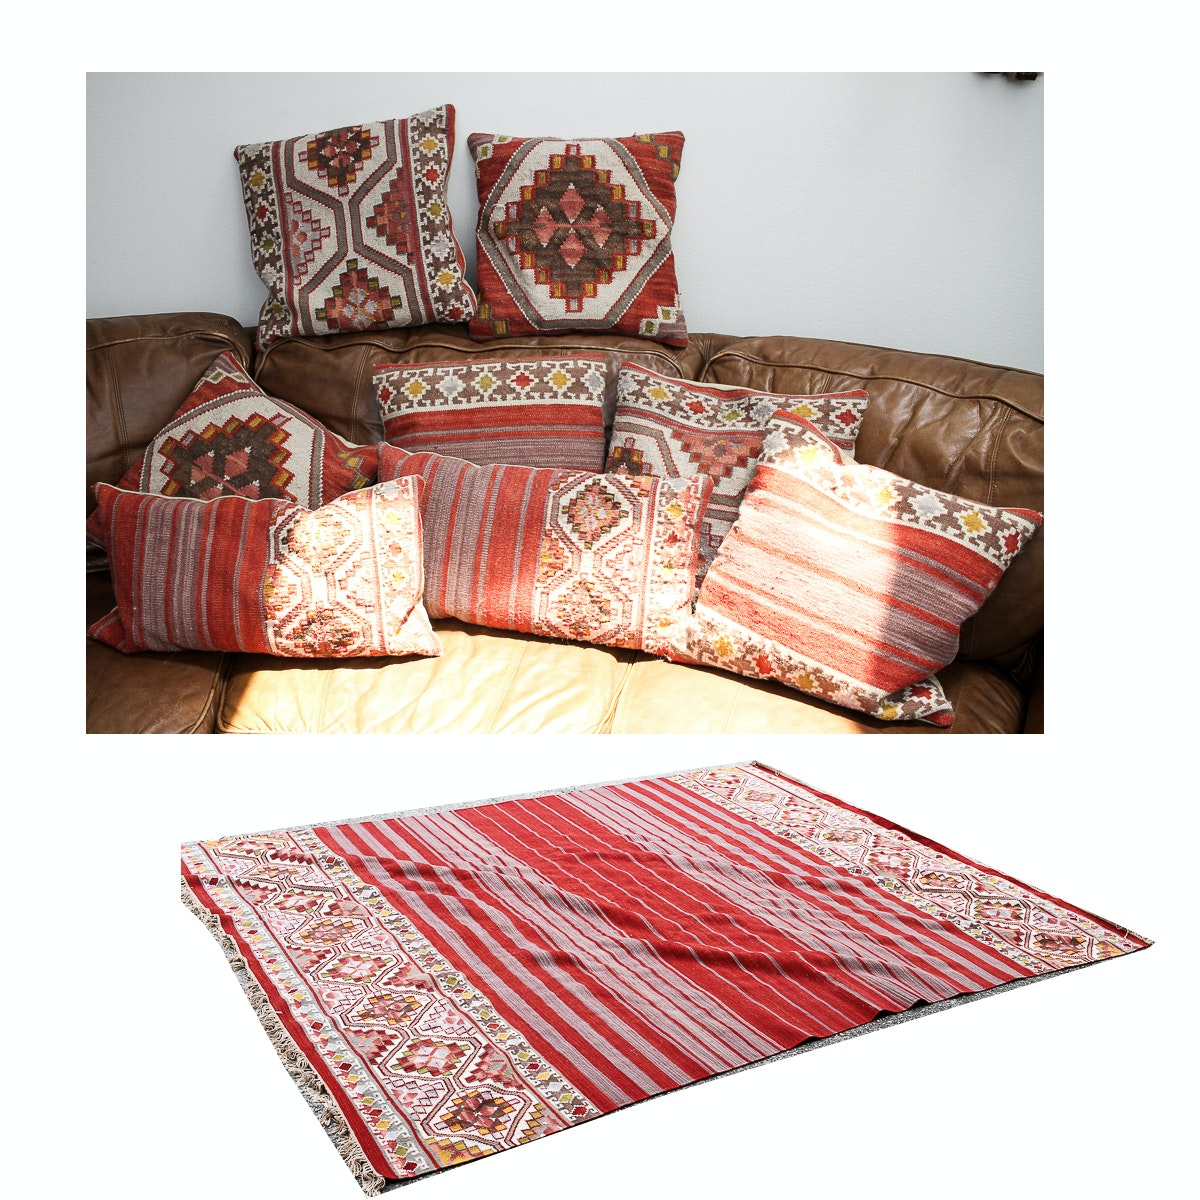 Southwest Themed Area Rug and Eight Throw Pillows